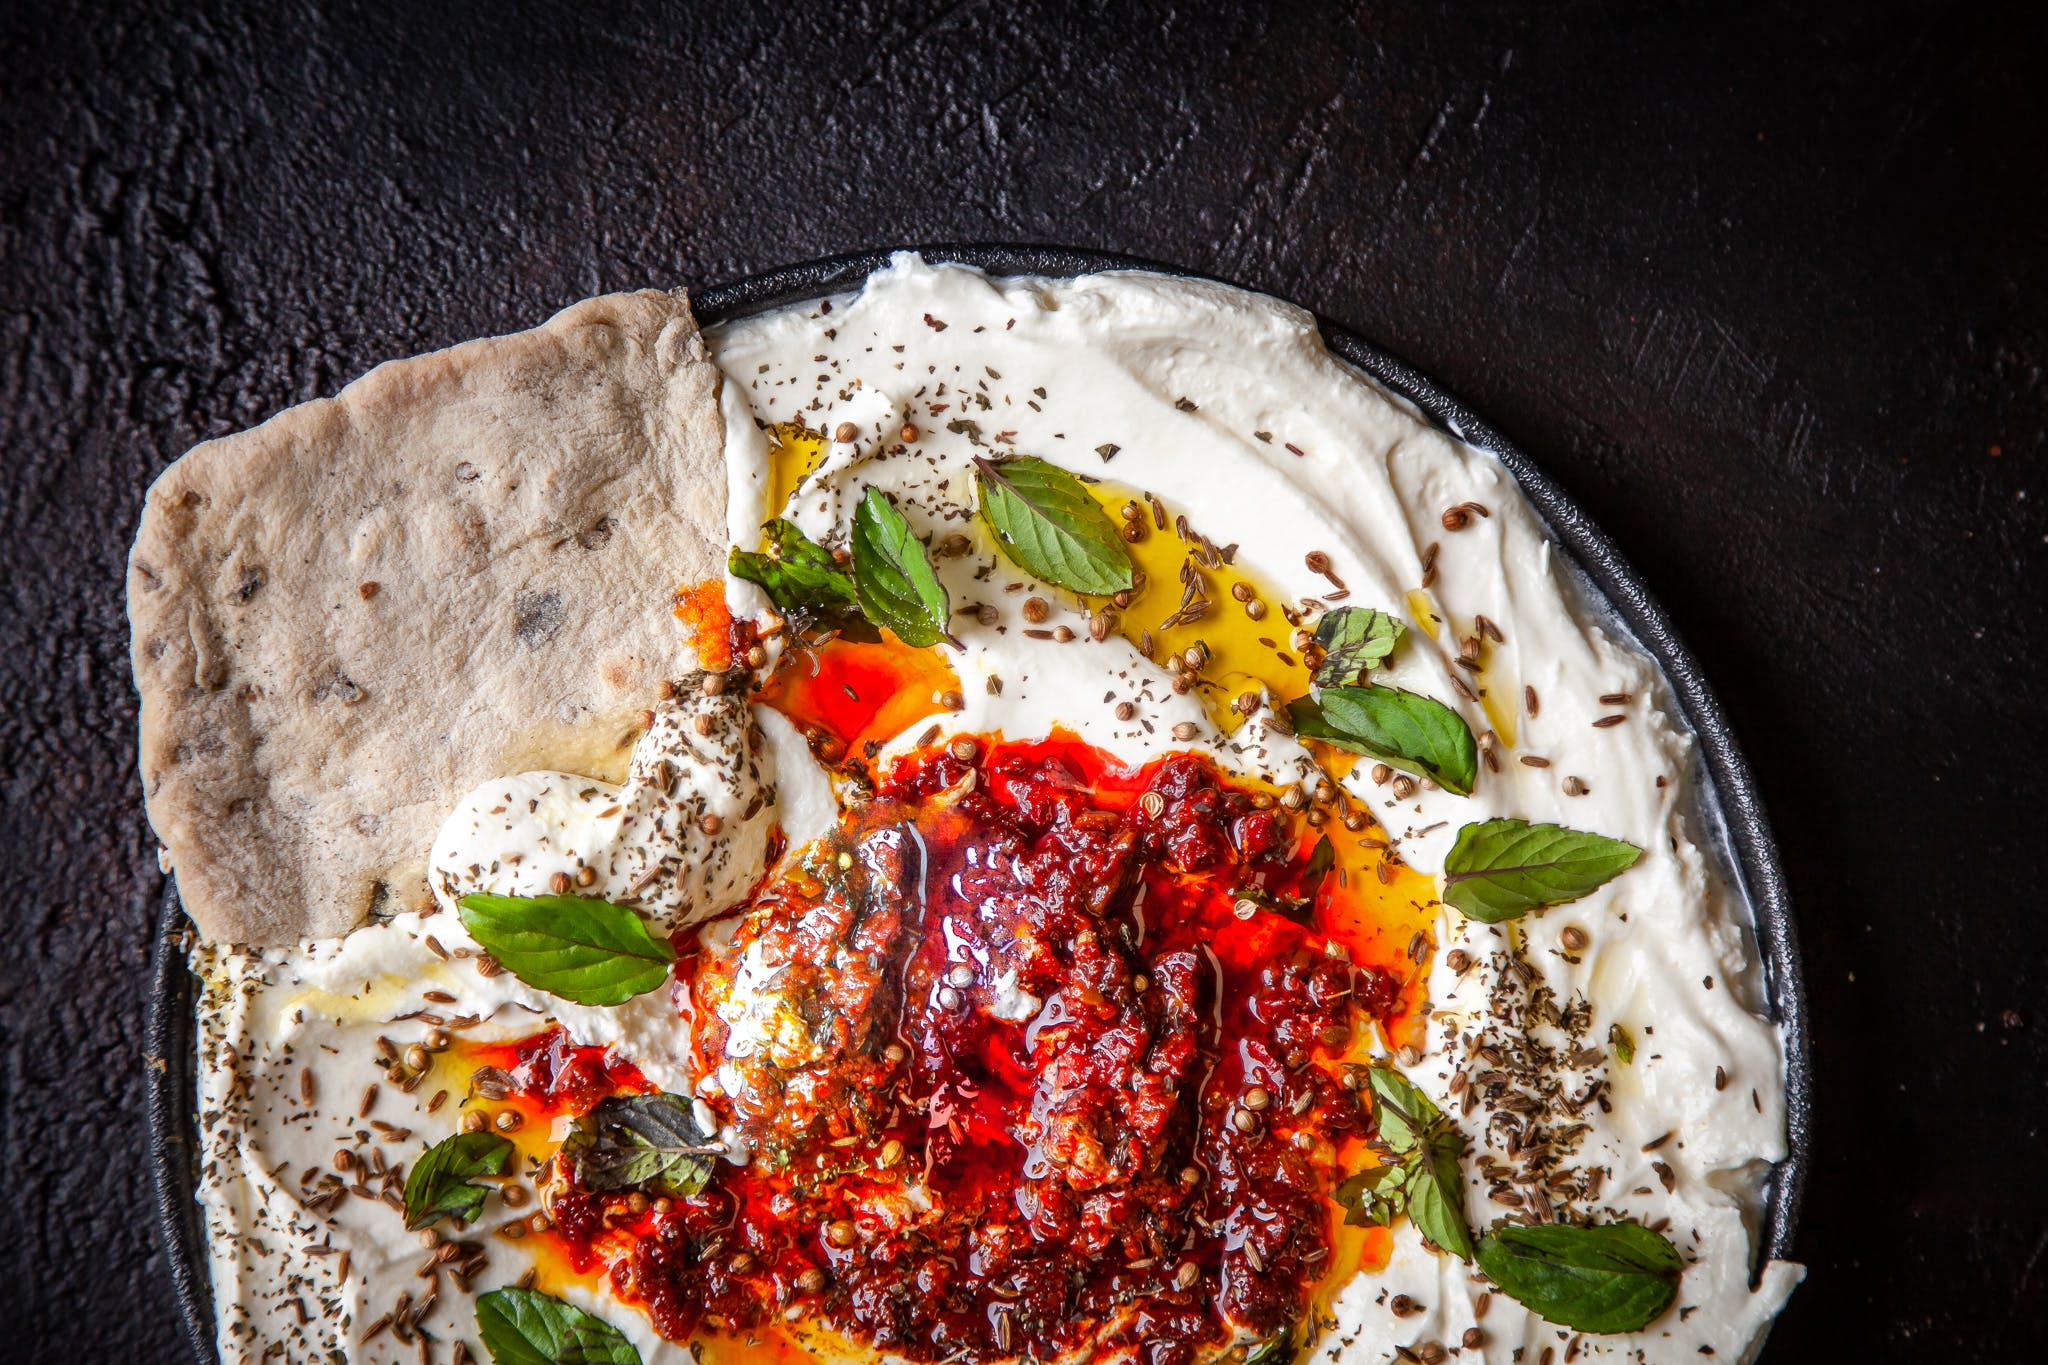 Greek Yoghurt and Harissa Dip with Black Olive Flatbreads